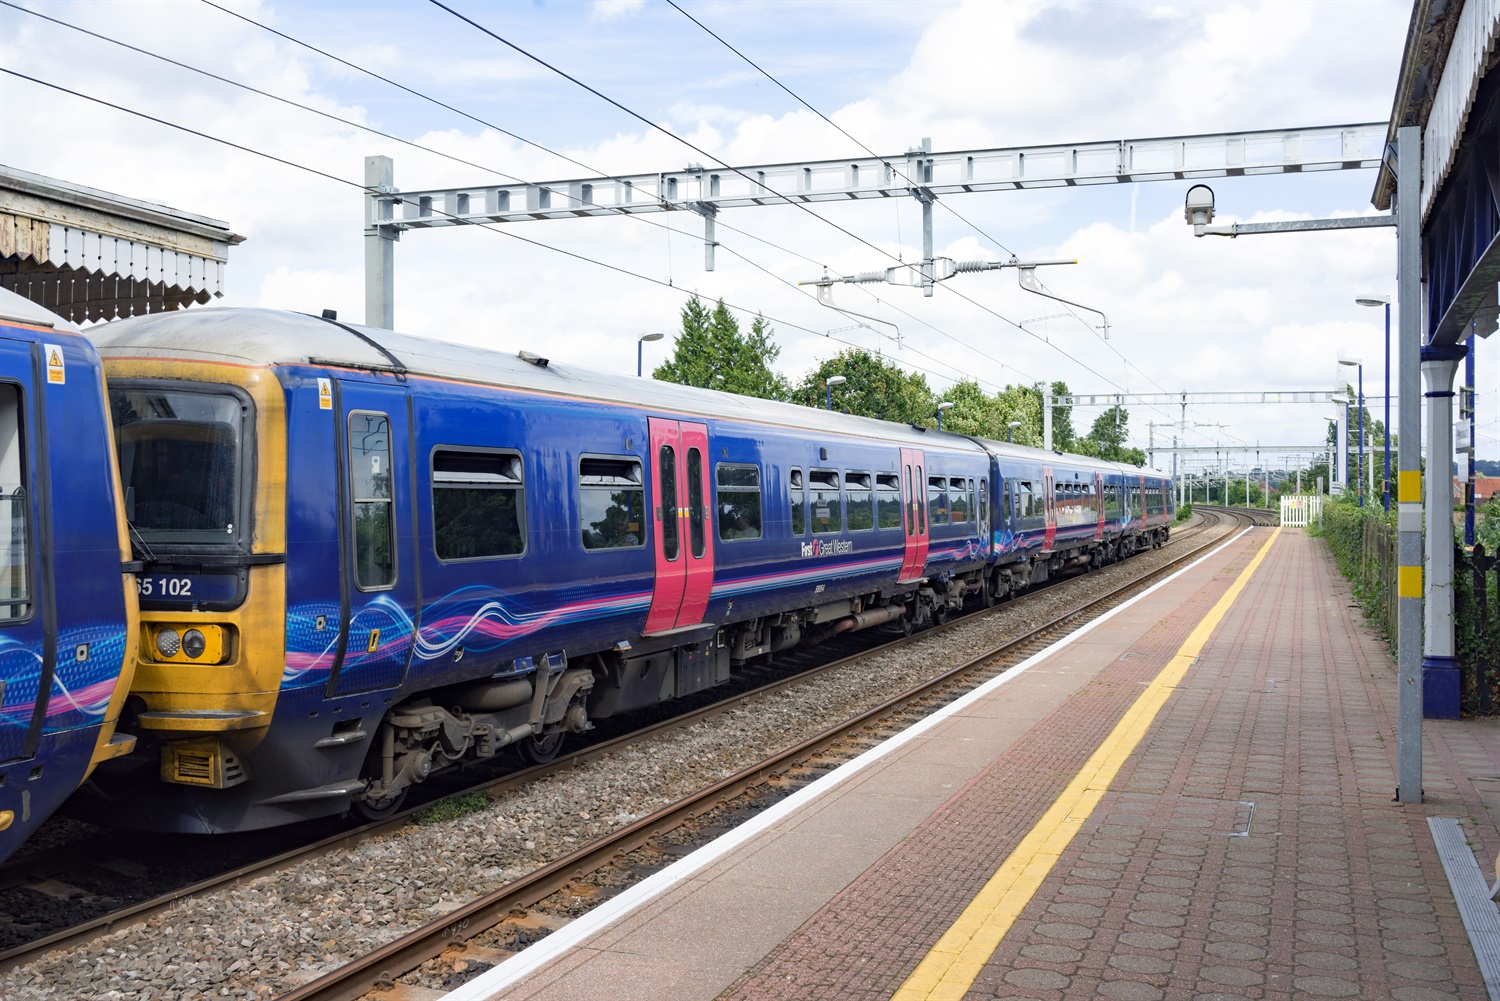 DfT won't split up Great Western, but calls for 'more decentralisation'